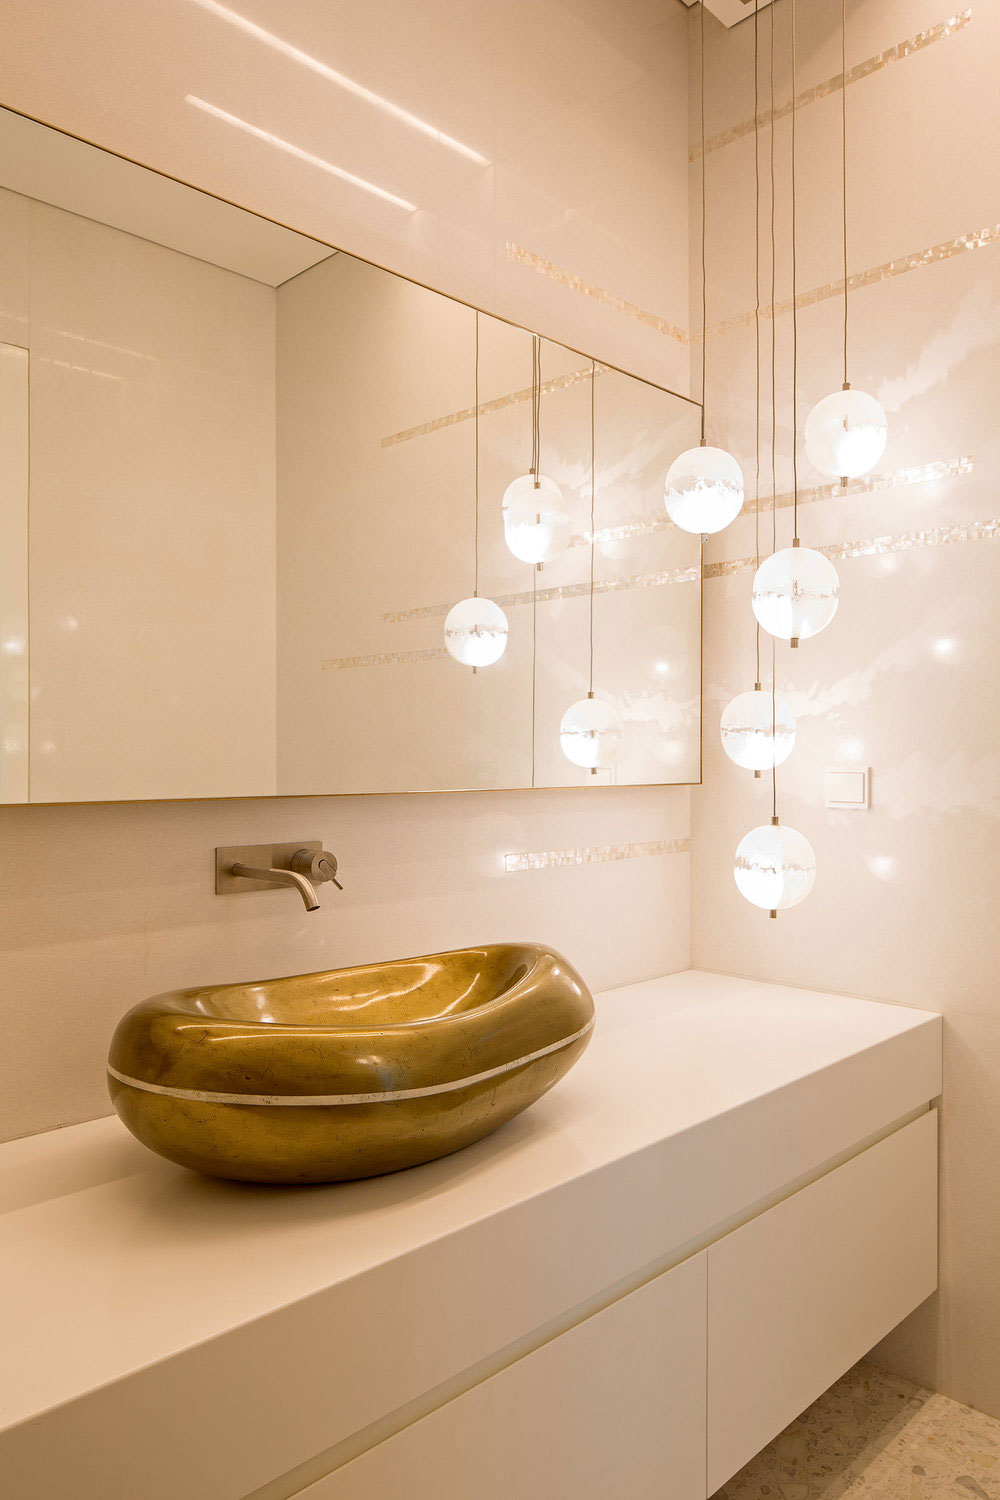 Gold sink, pendant lighting